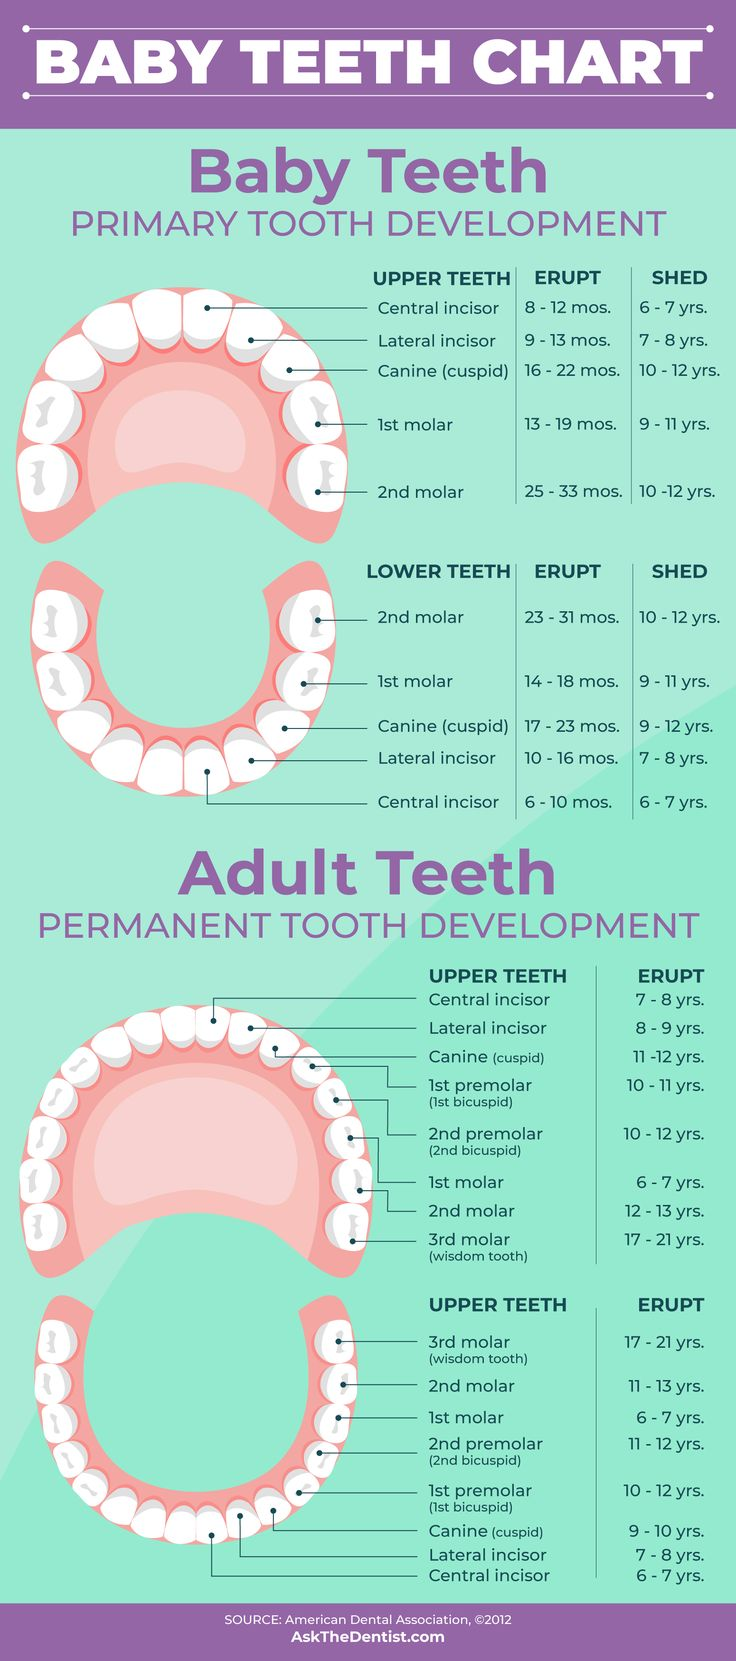 Baby teeth eruption charts when they fall out and